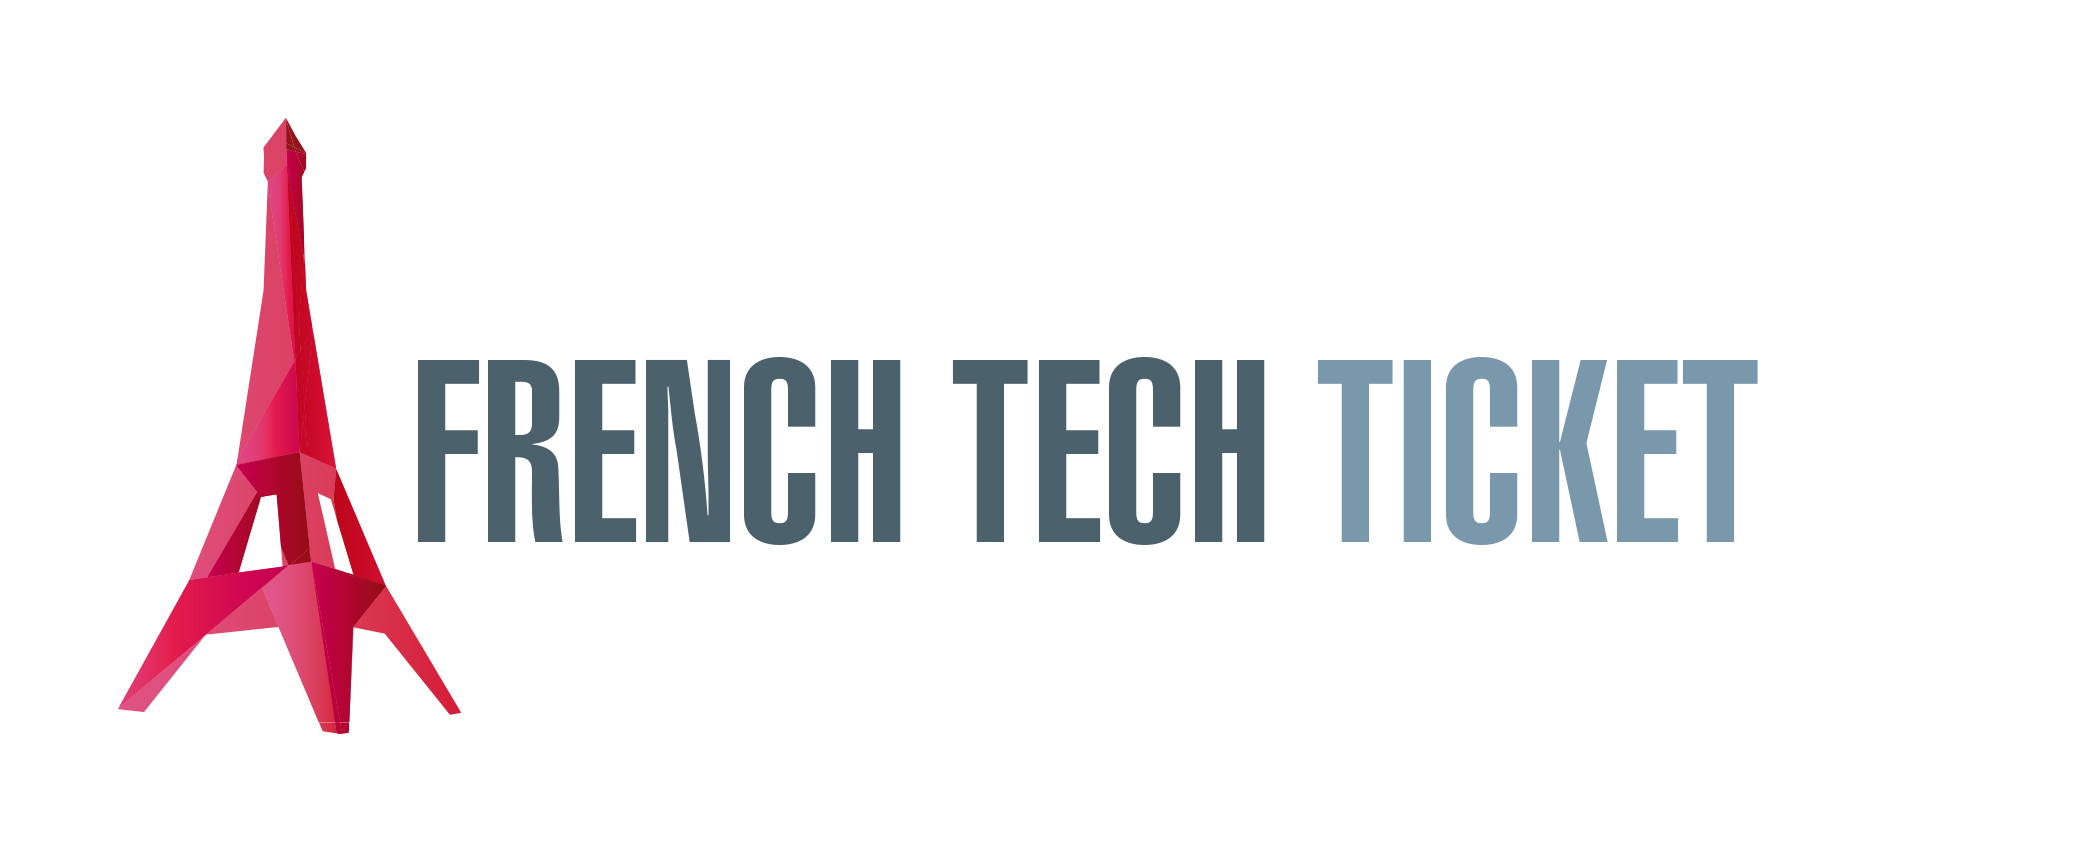 French Tech : prends ton « Ticket » pour la France !